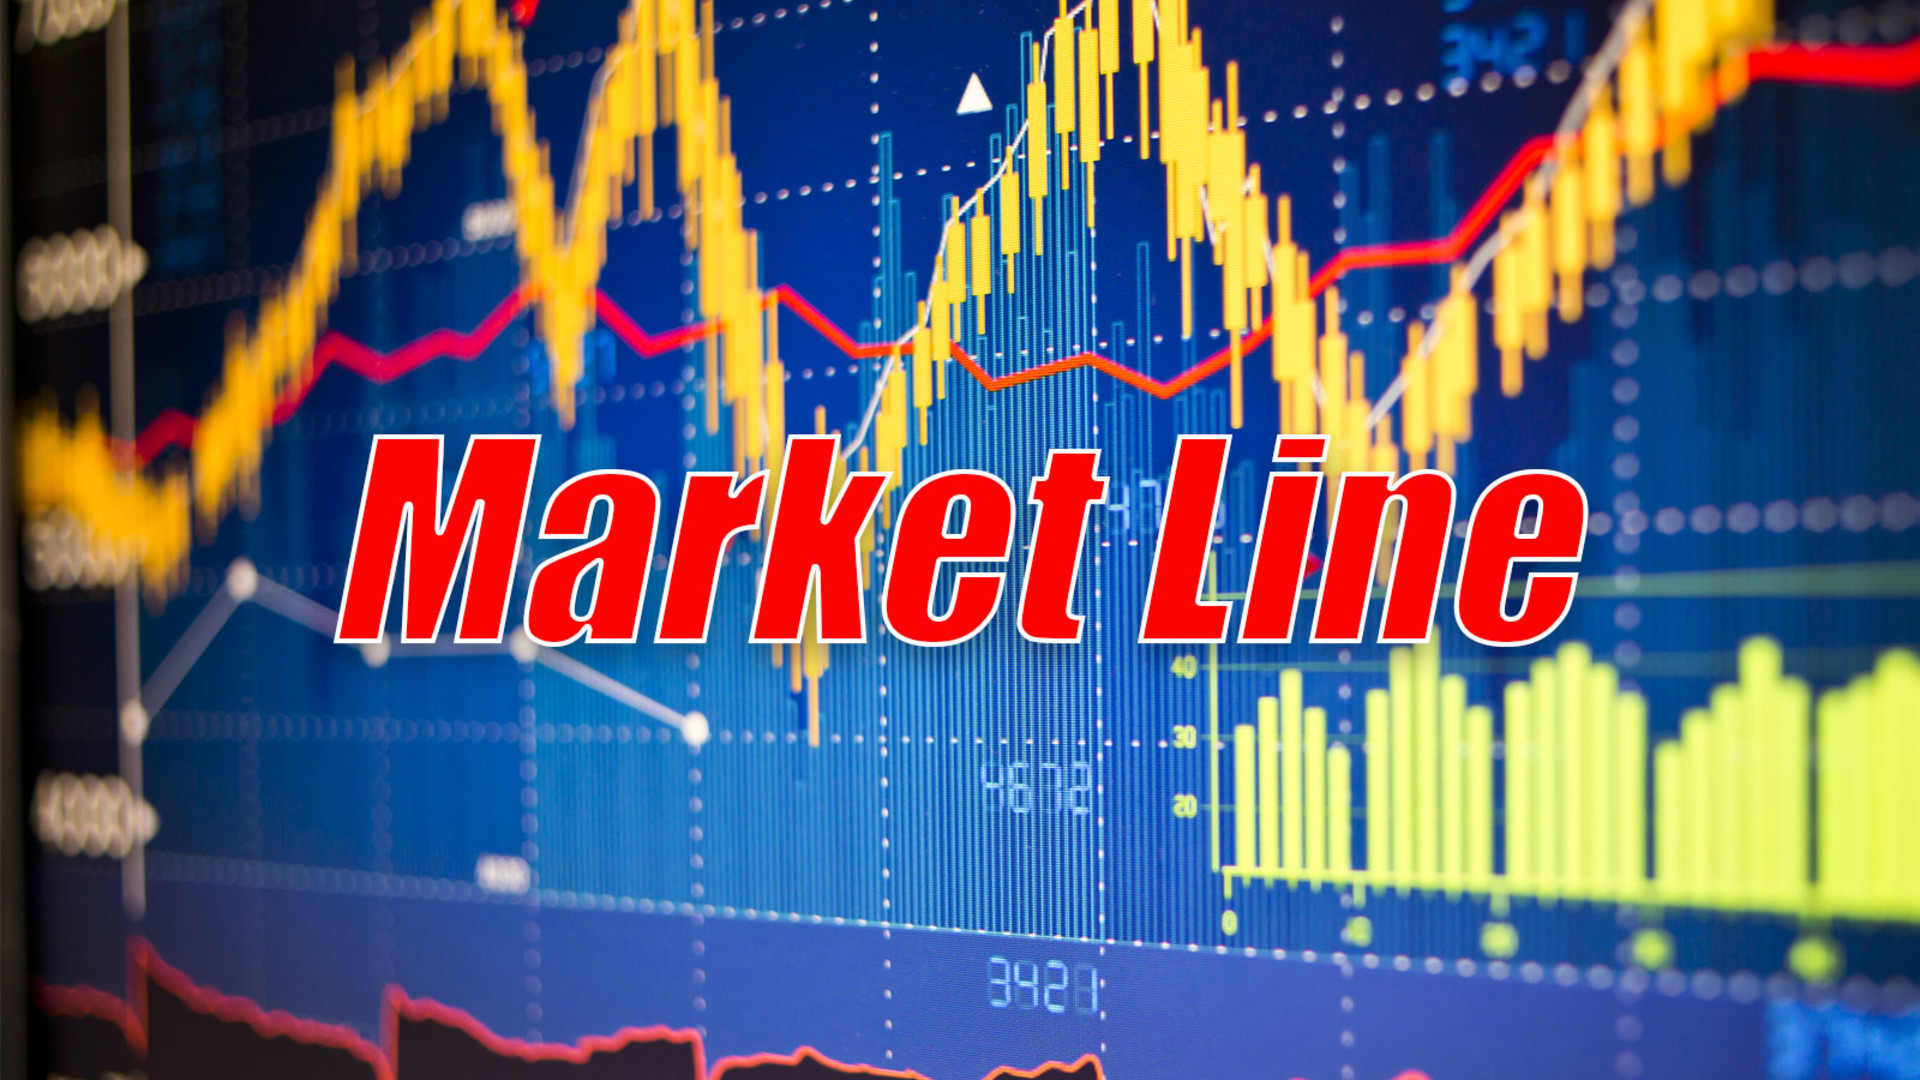 Marketline Report for Thursday, June 20th